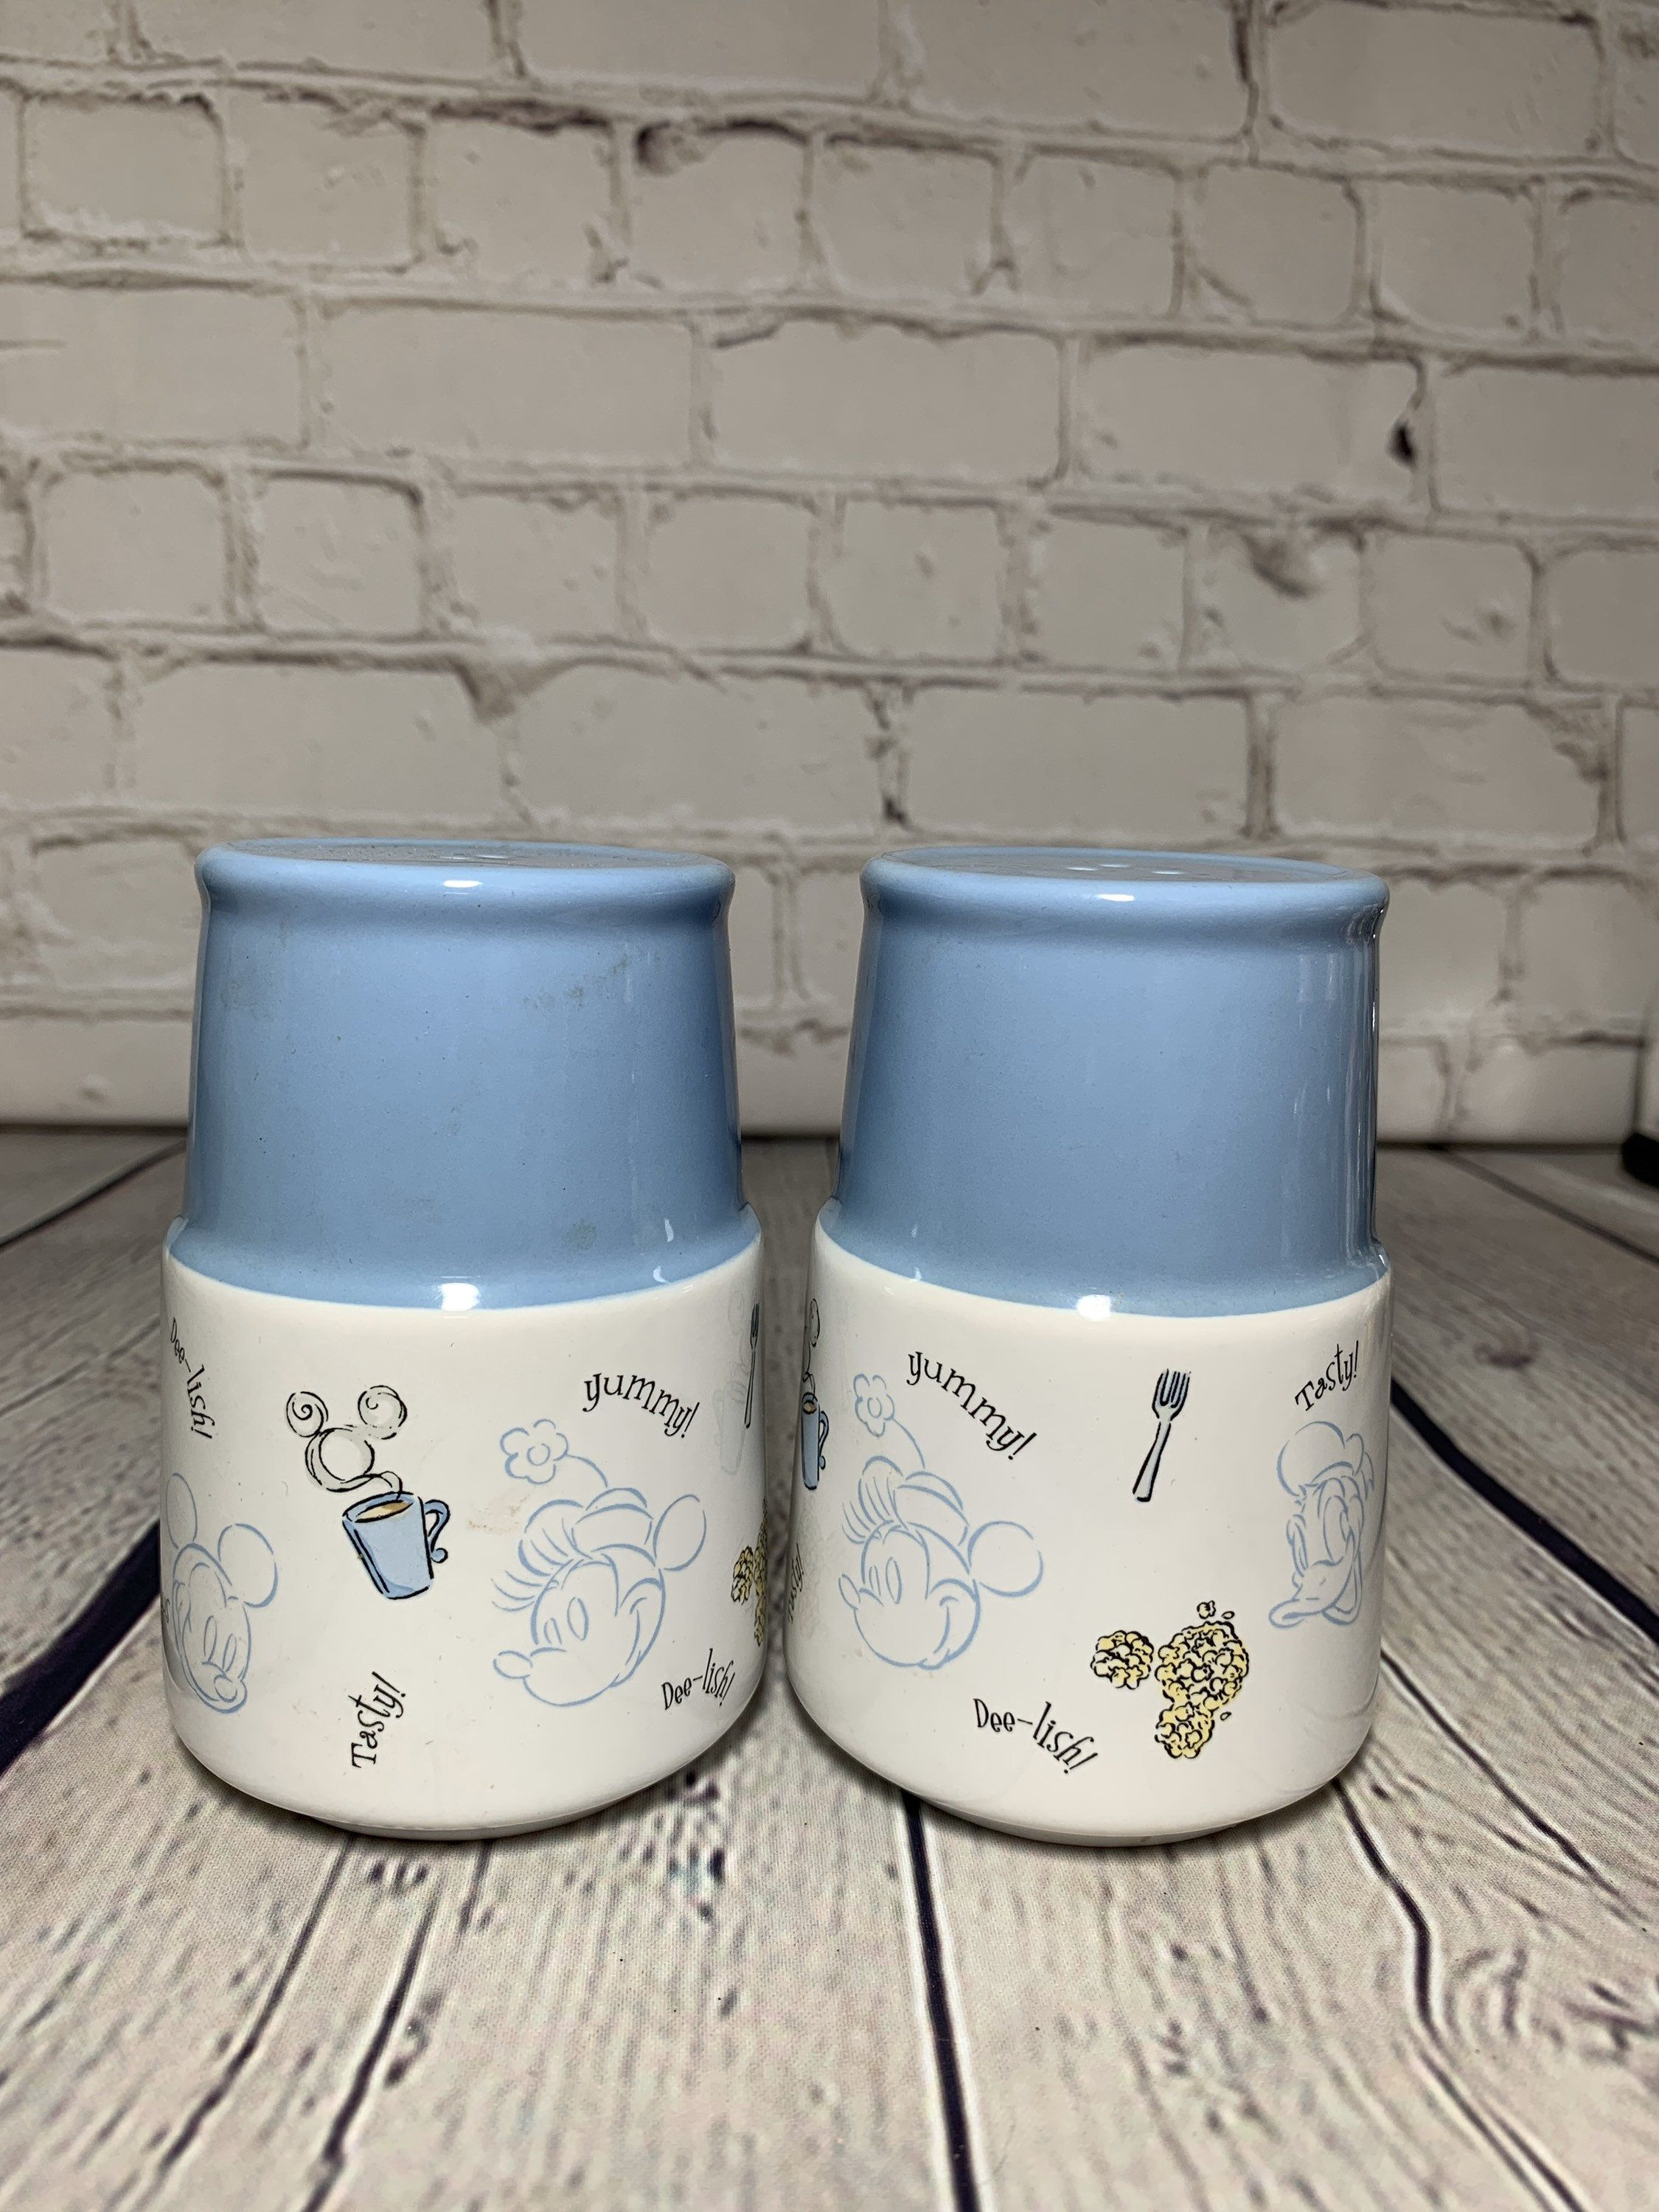 Country farmhouse style blue and white ceramic and glazed